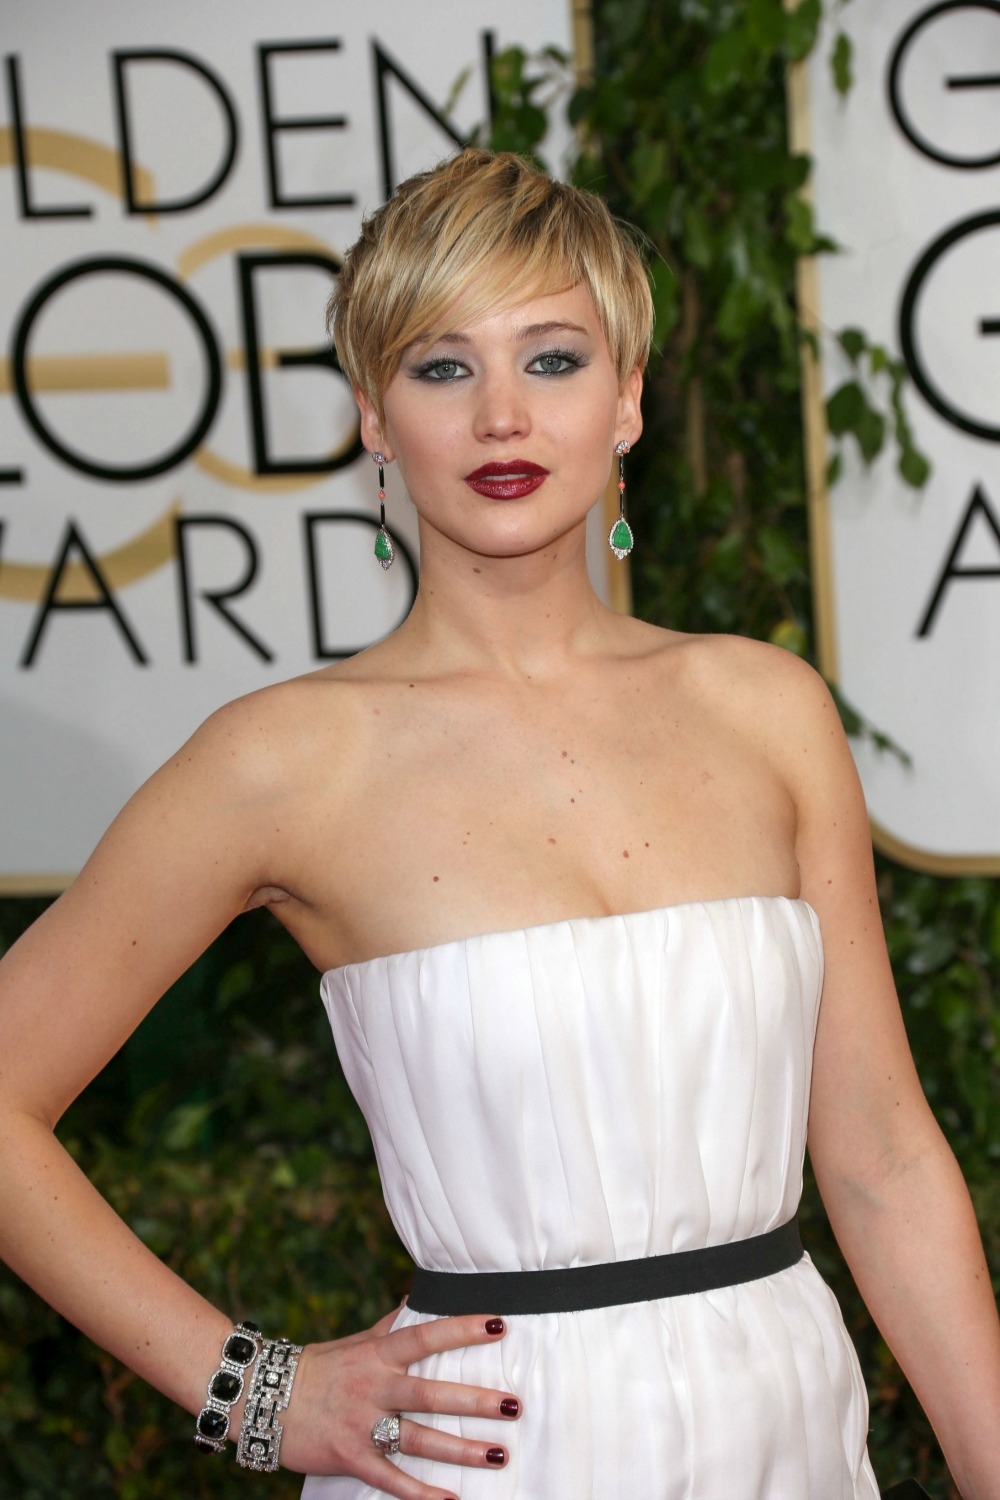 The Pixie Haircut - Celebrity Women Who Sport The Look Jennifer Lawrence